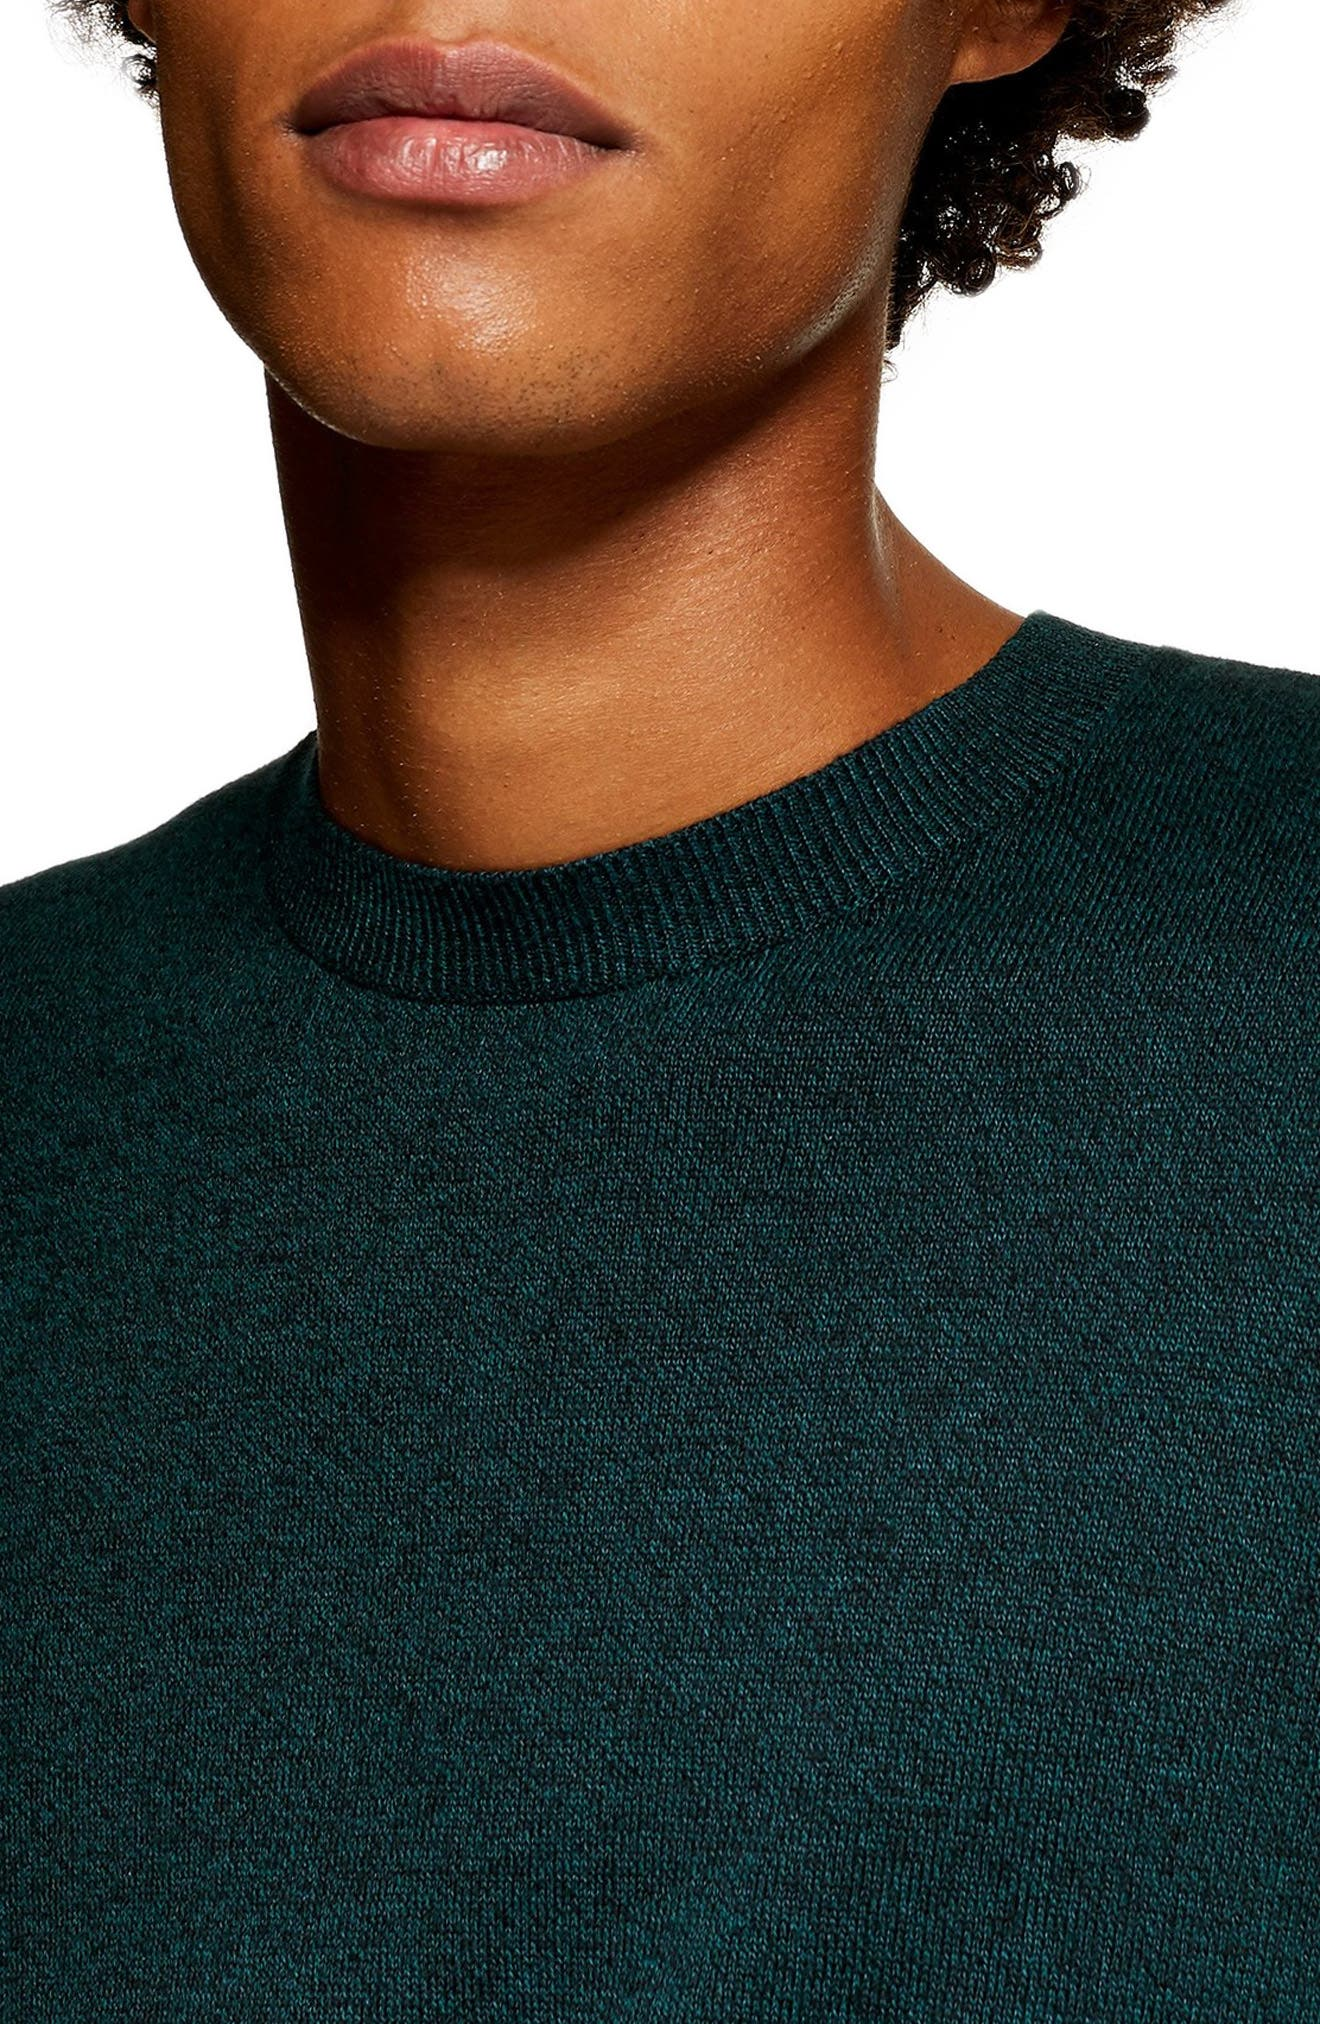 Marl Crewneck Sweater,                             Alternate thumbnail 3, color,                             GREEN